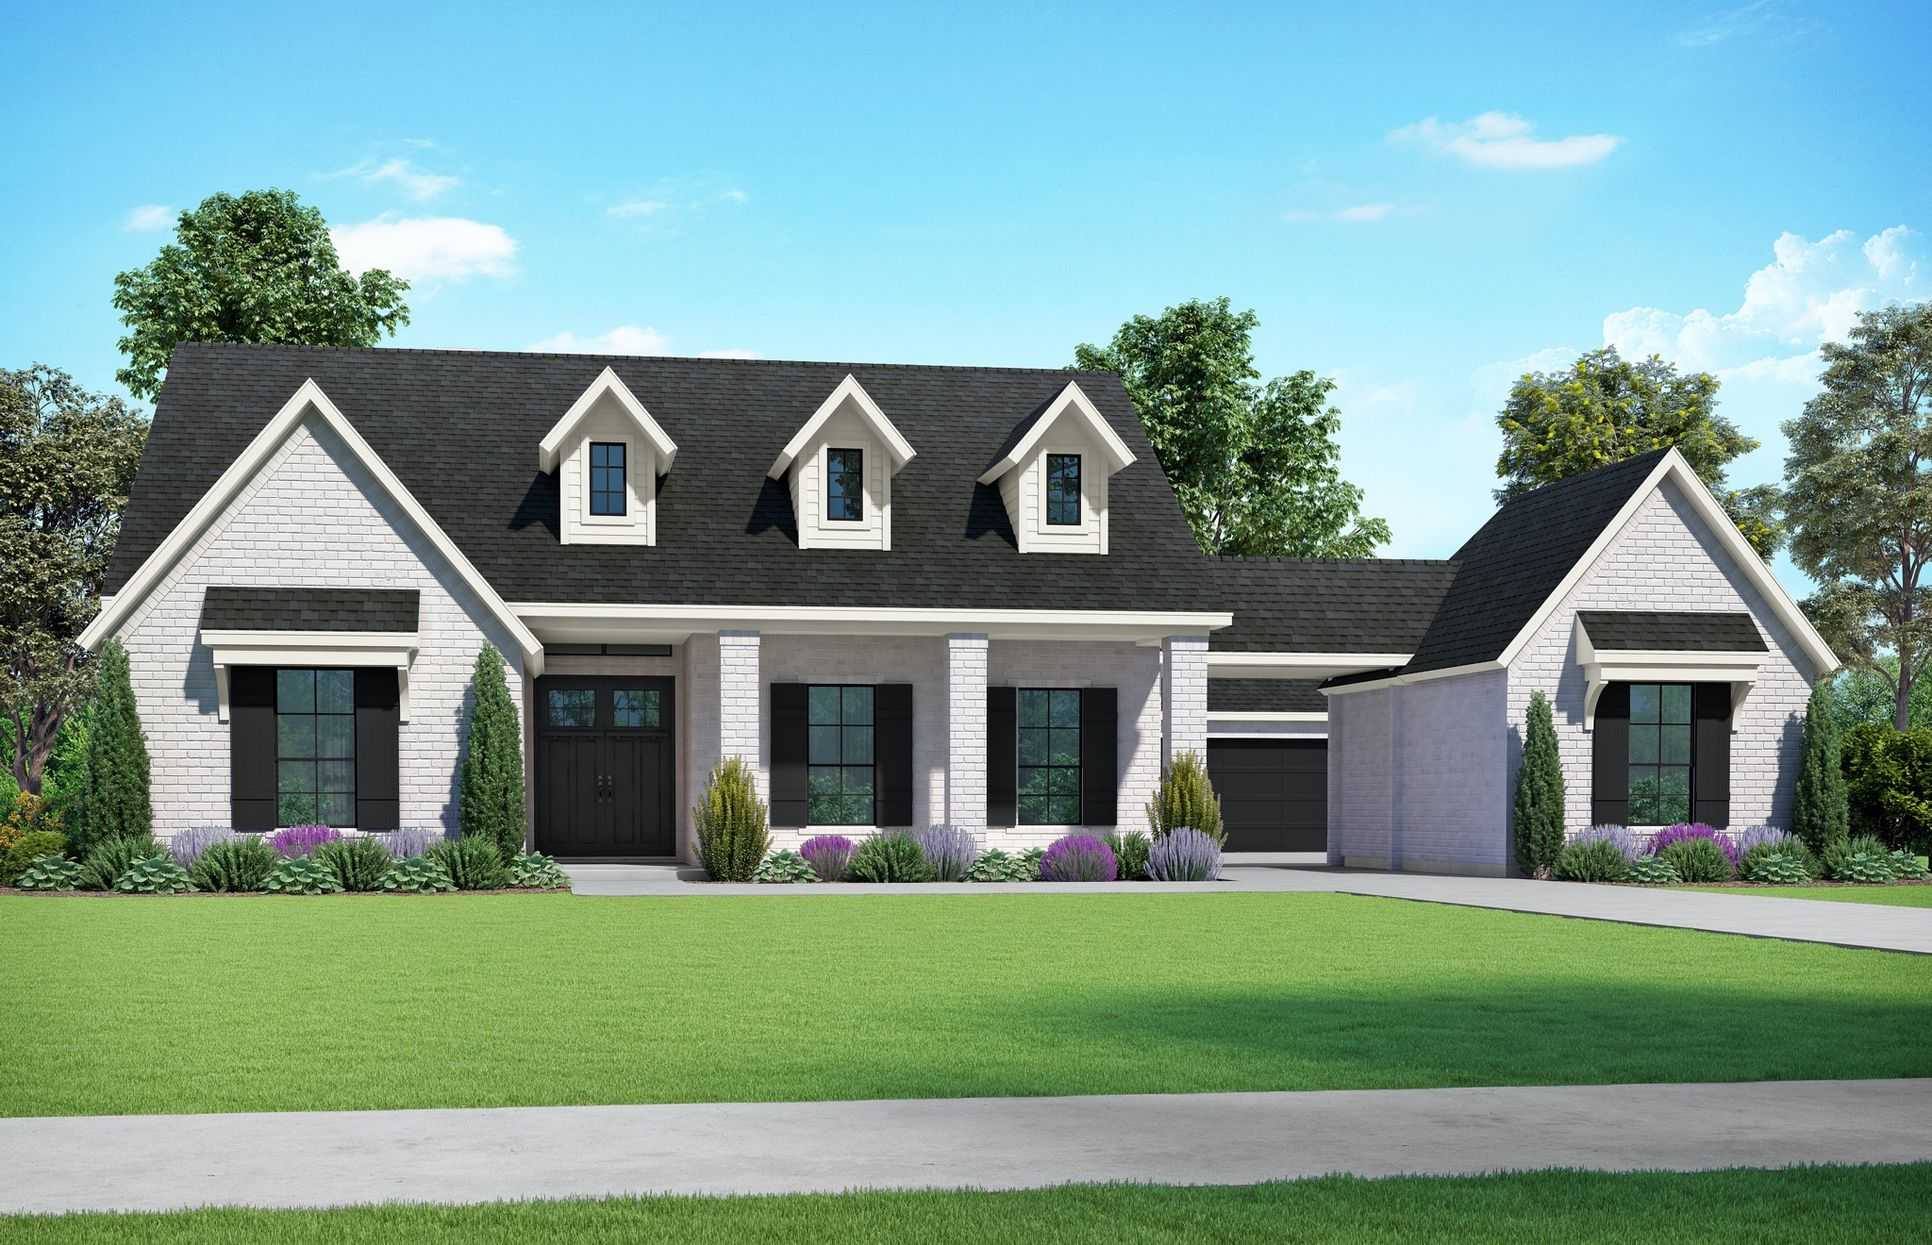 Travis Elevation F. Images are artist renderings and will differ from the actual home built.:Travis Elevation F